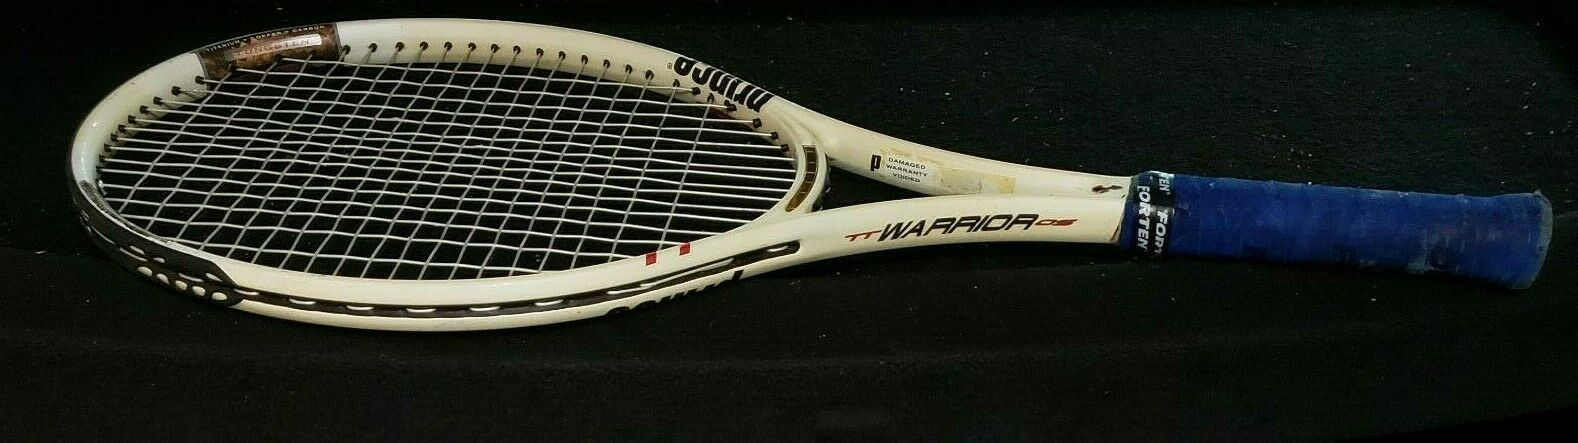 Prince TT Warrior OverGröße Triple menace Tungstène Raquette De Tennis Grip P3 GD